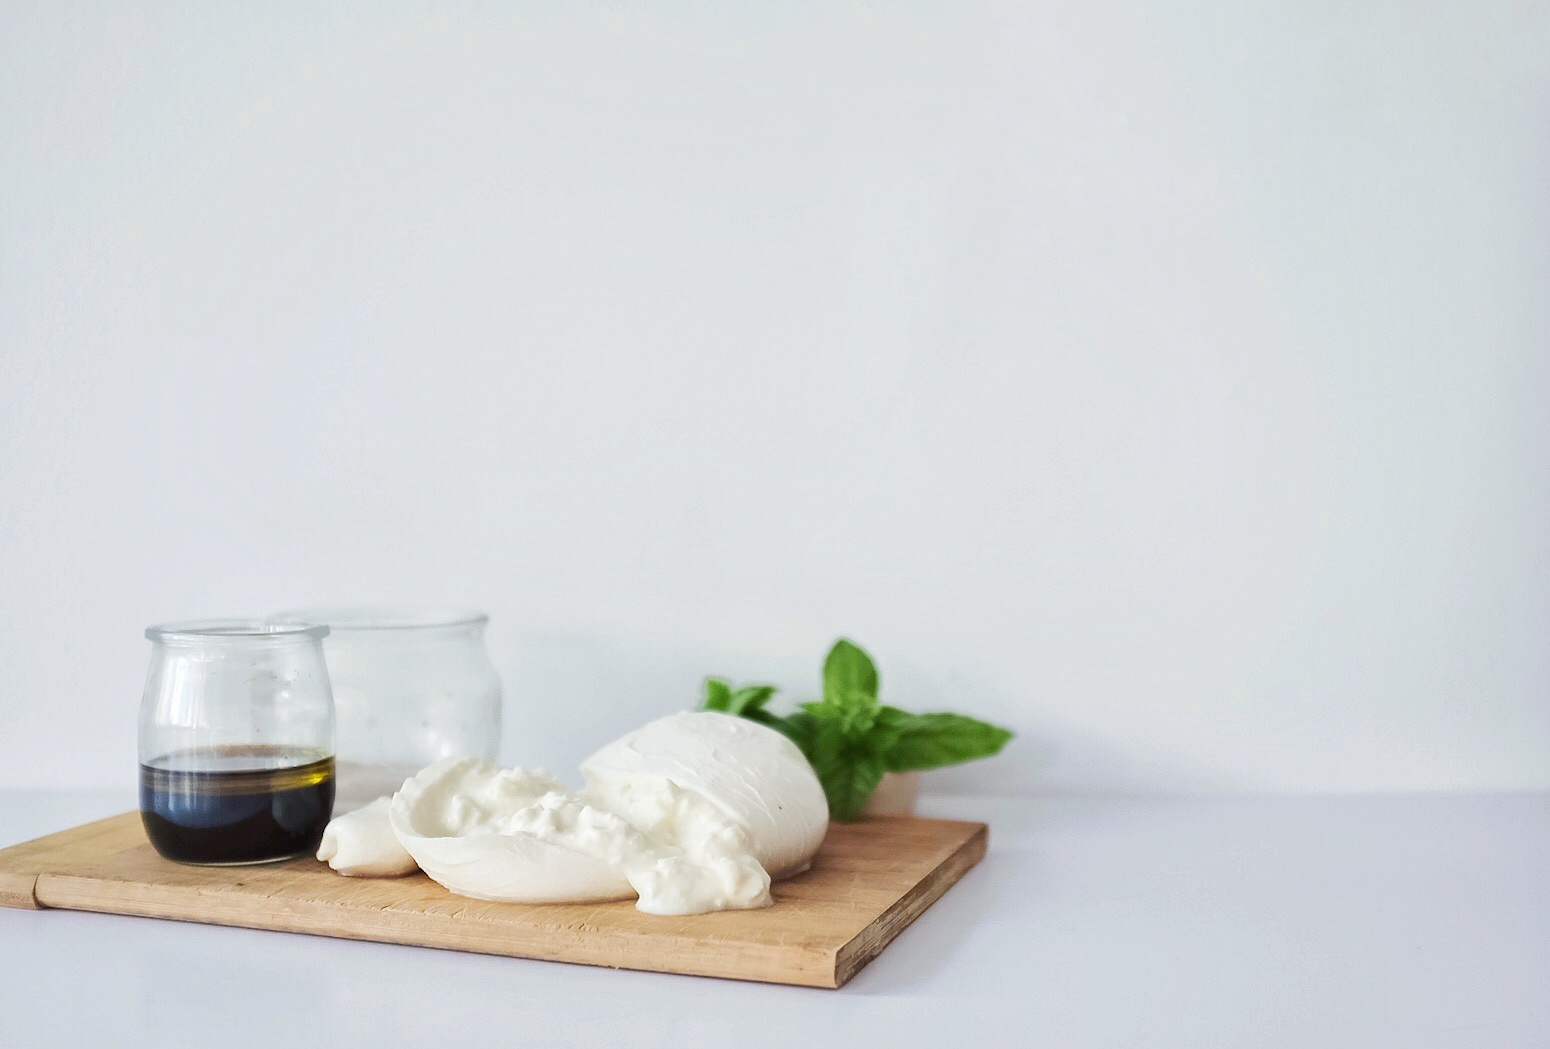 Things to splurge on. Definitely make sure you get great quality burrata, balsamic and fresh basil. It makes a world of difference.